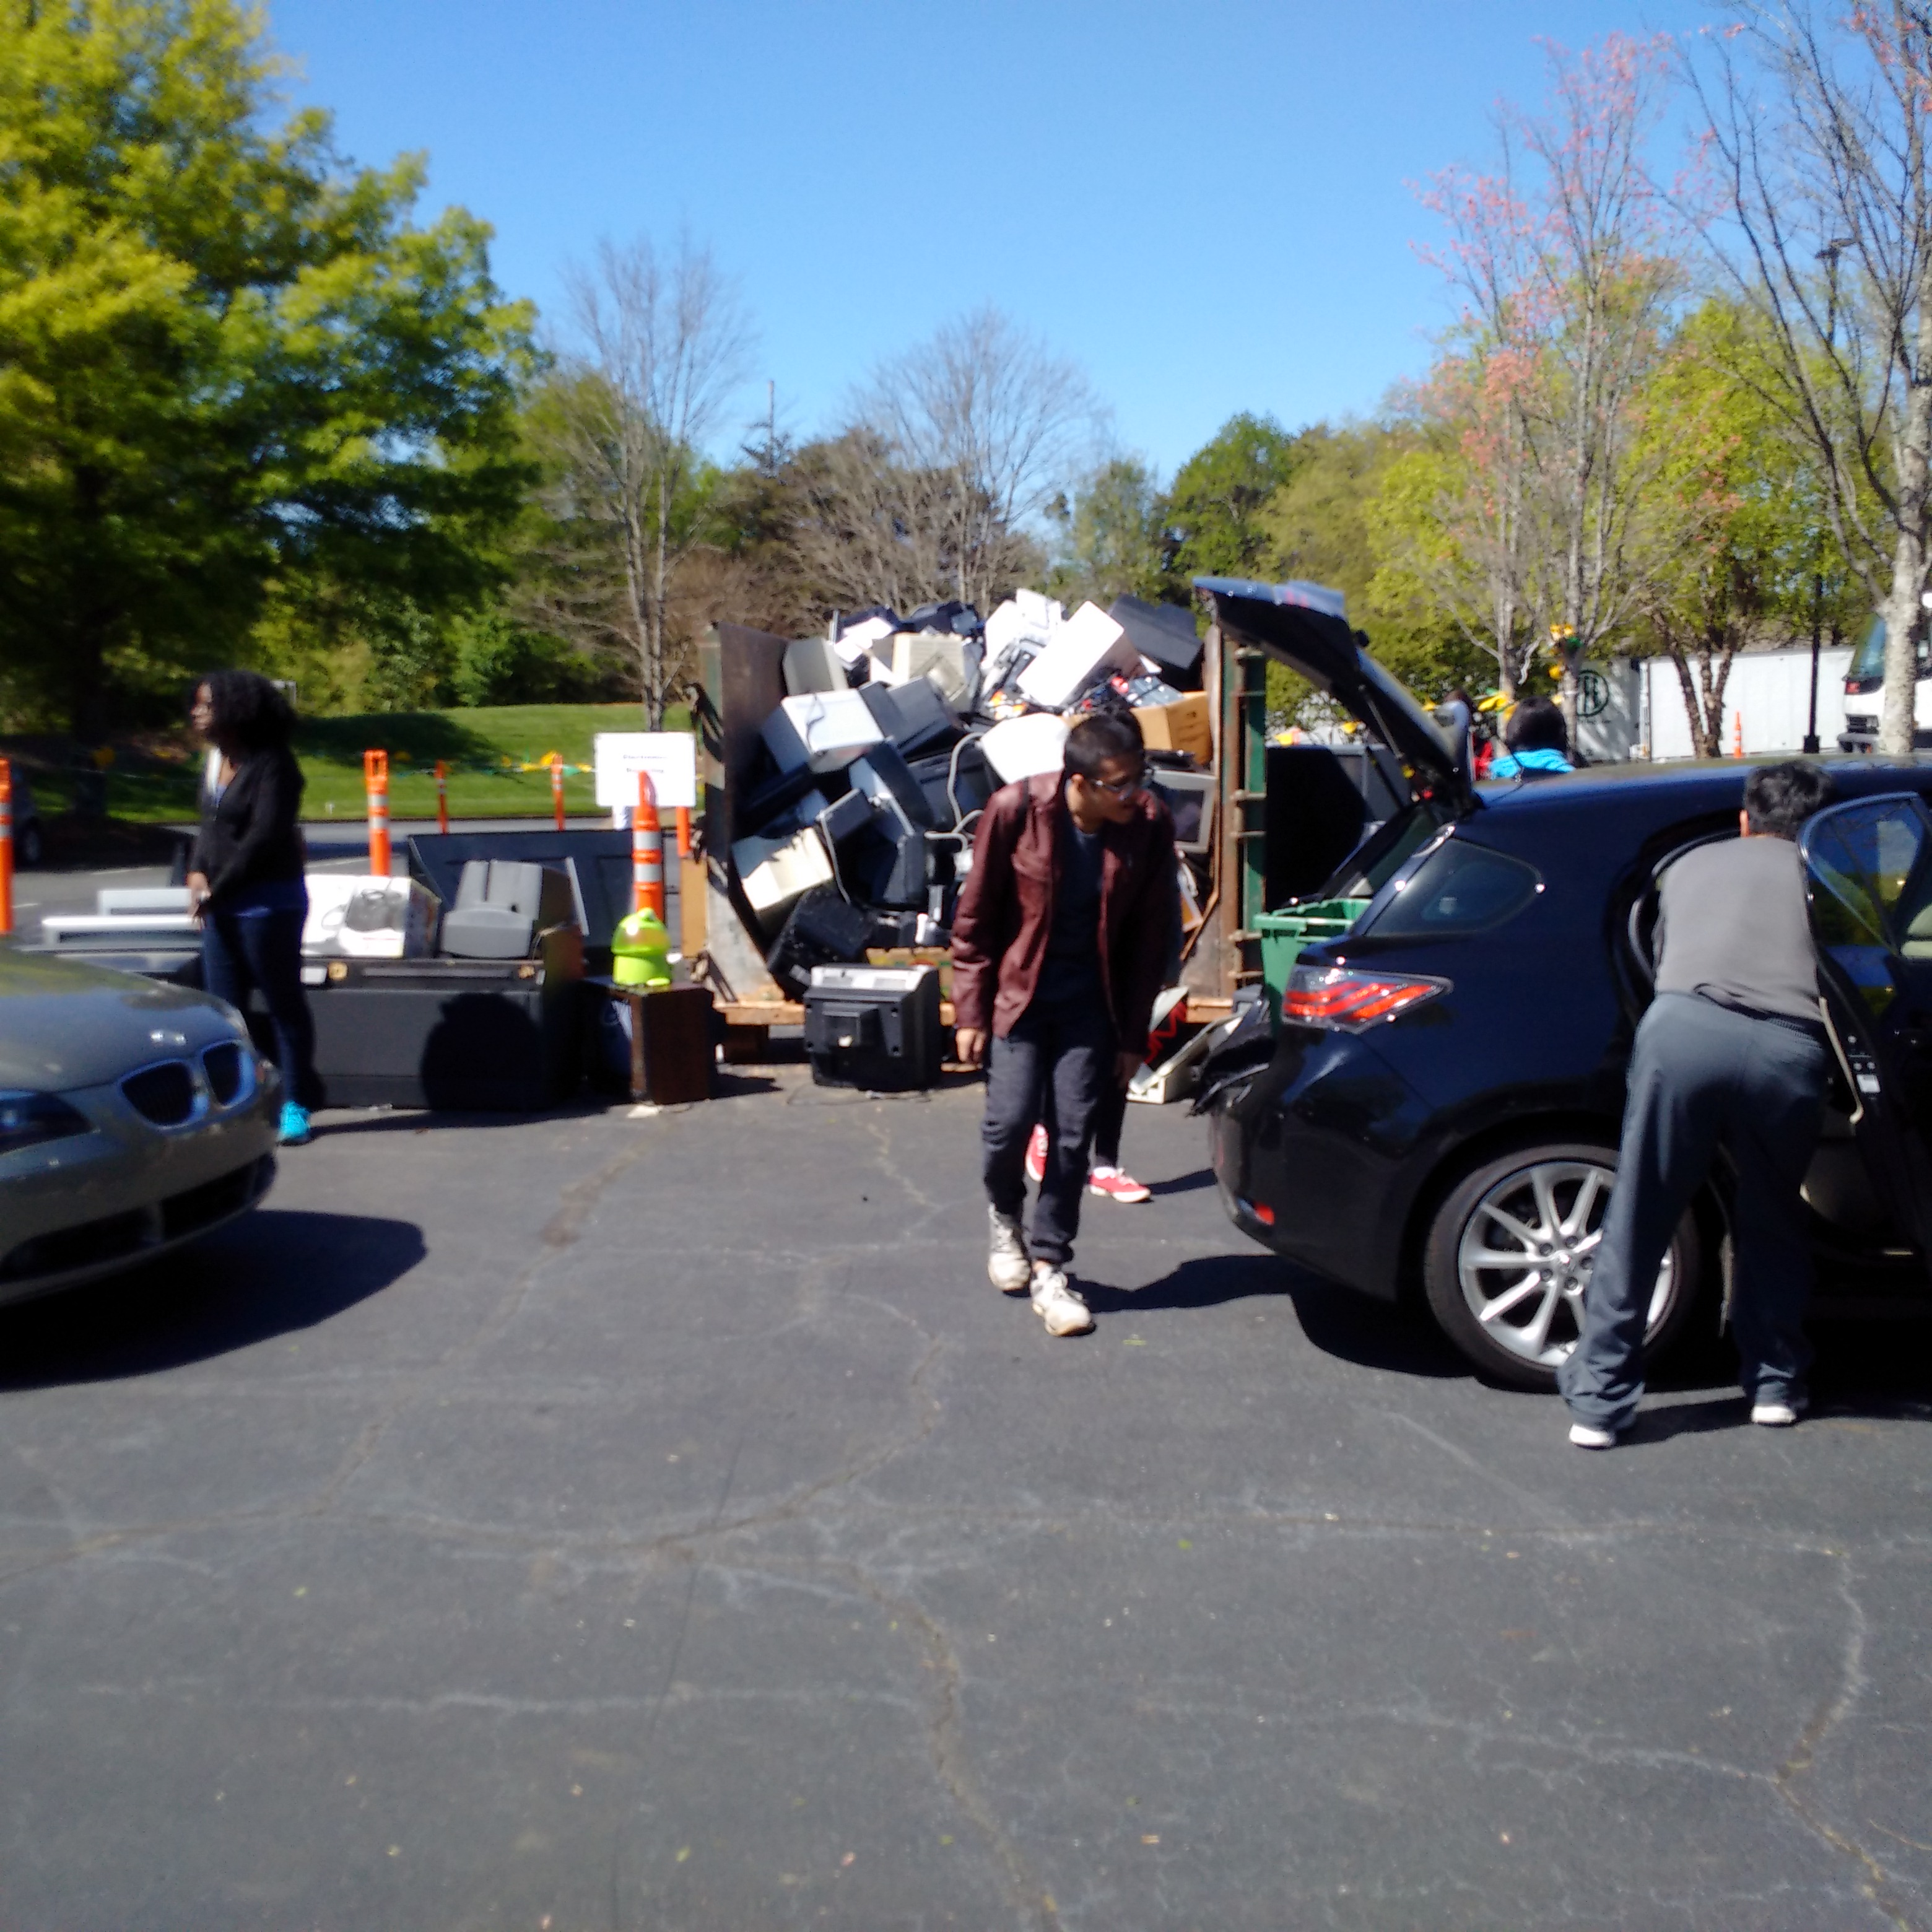 Recycle large items, electronics, clothing, home medical equipment at Bulky Items Recycling Day April 29